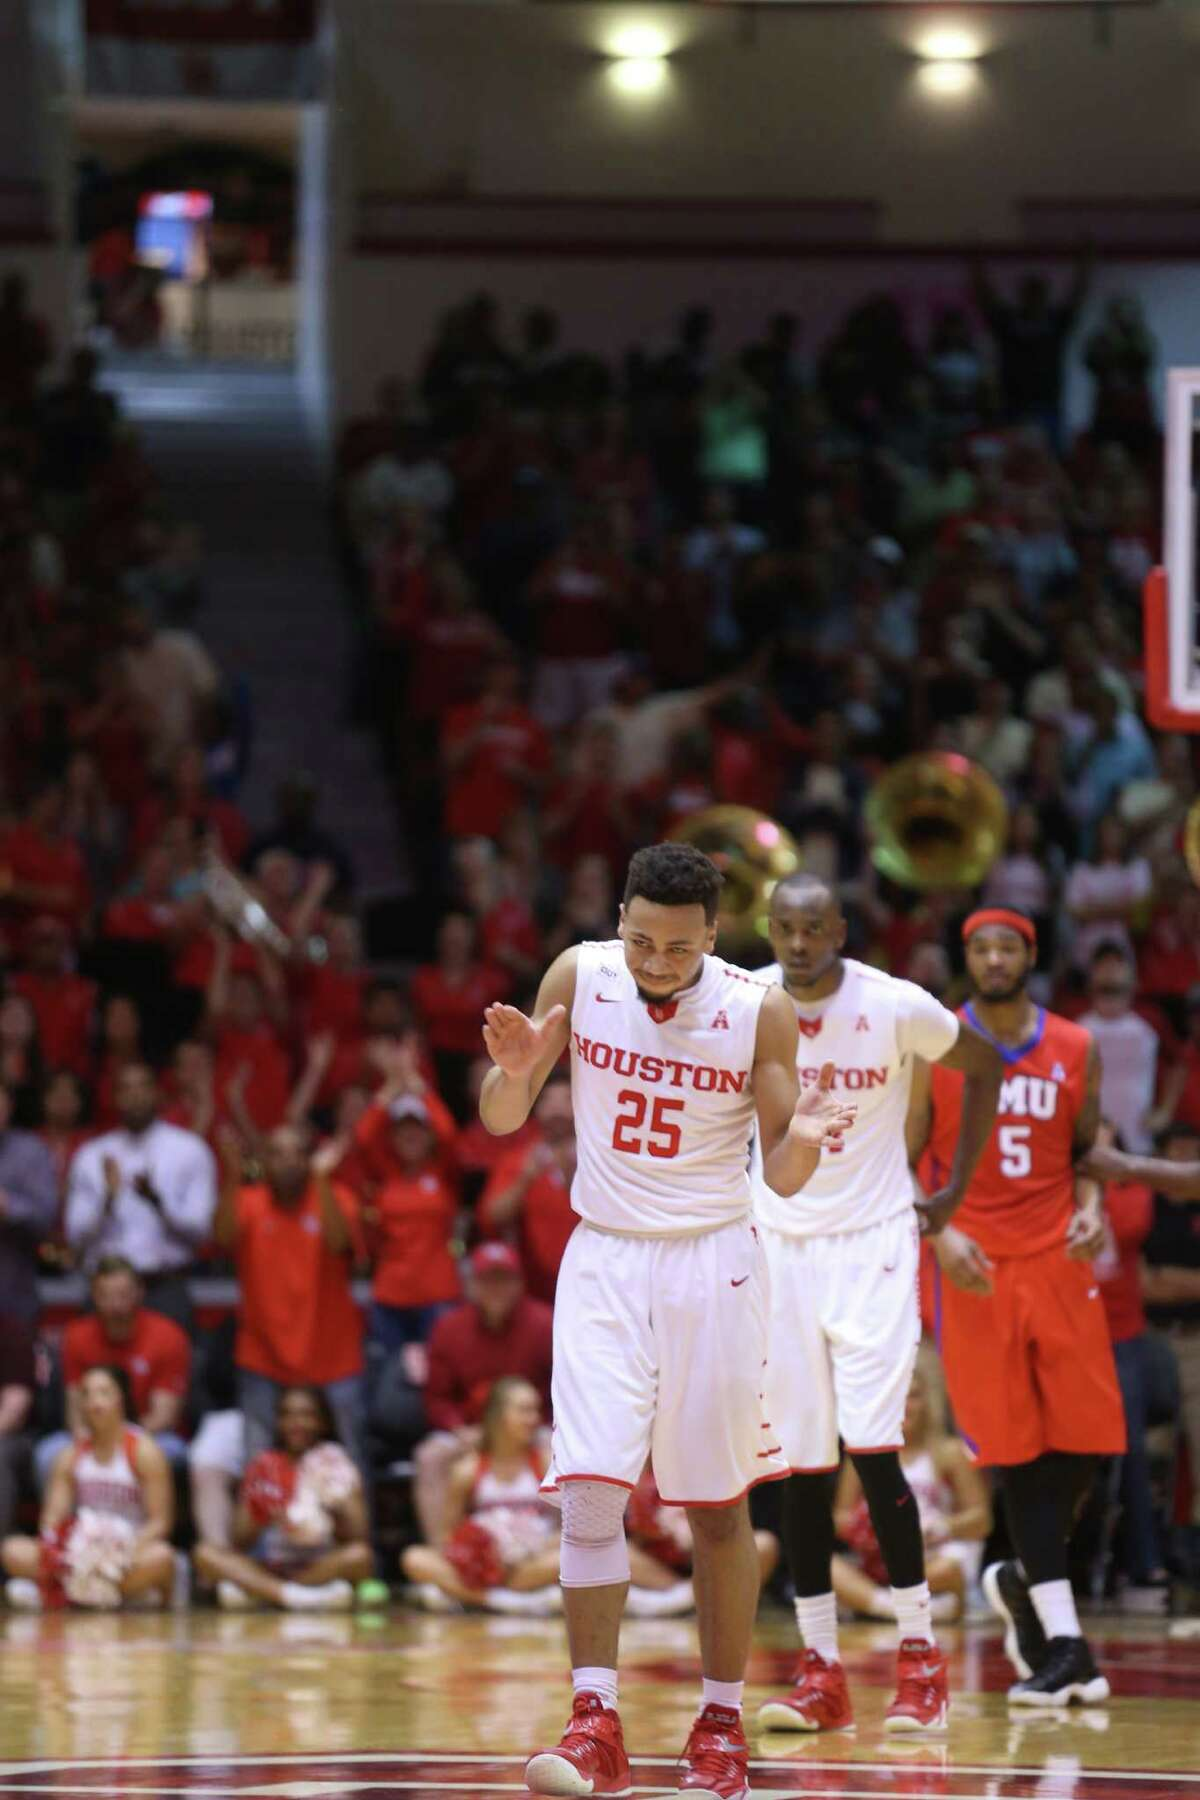 Photos of first half game action between University of Houston and Southern Methodist University at Hofheinz Pavilion on Monday, Feb. 1, 2016 in Houston. UH won the game 71-68.